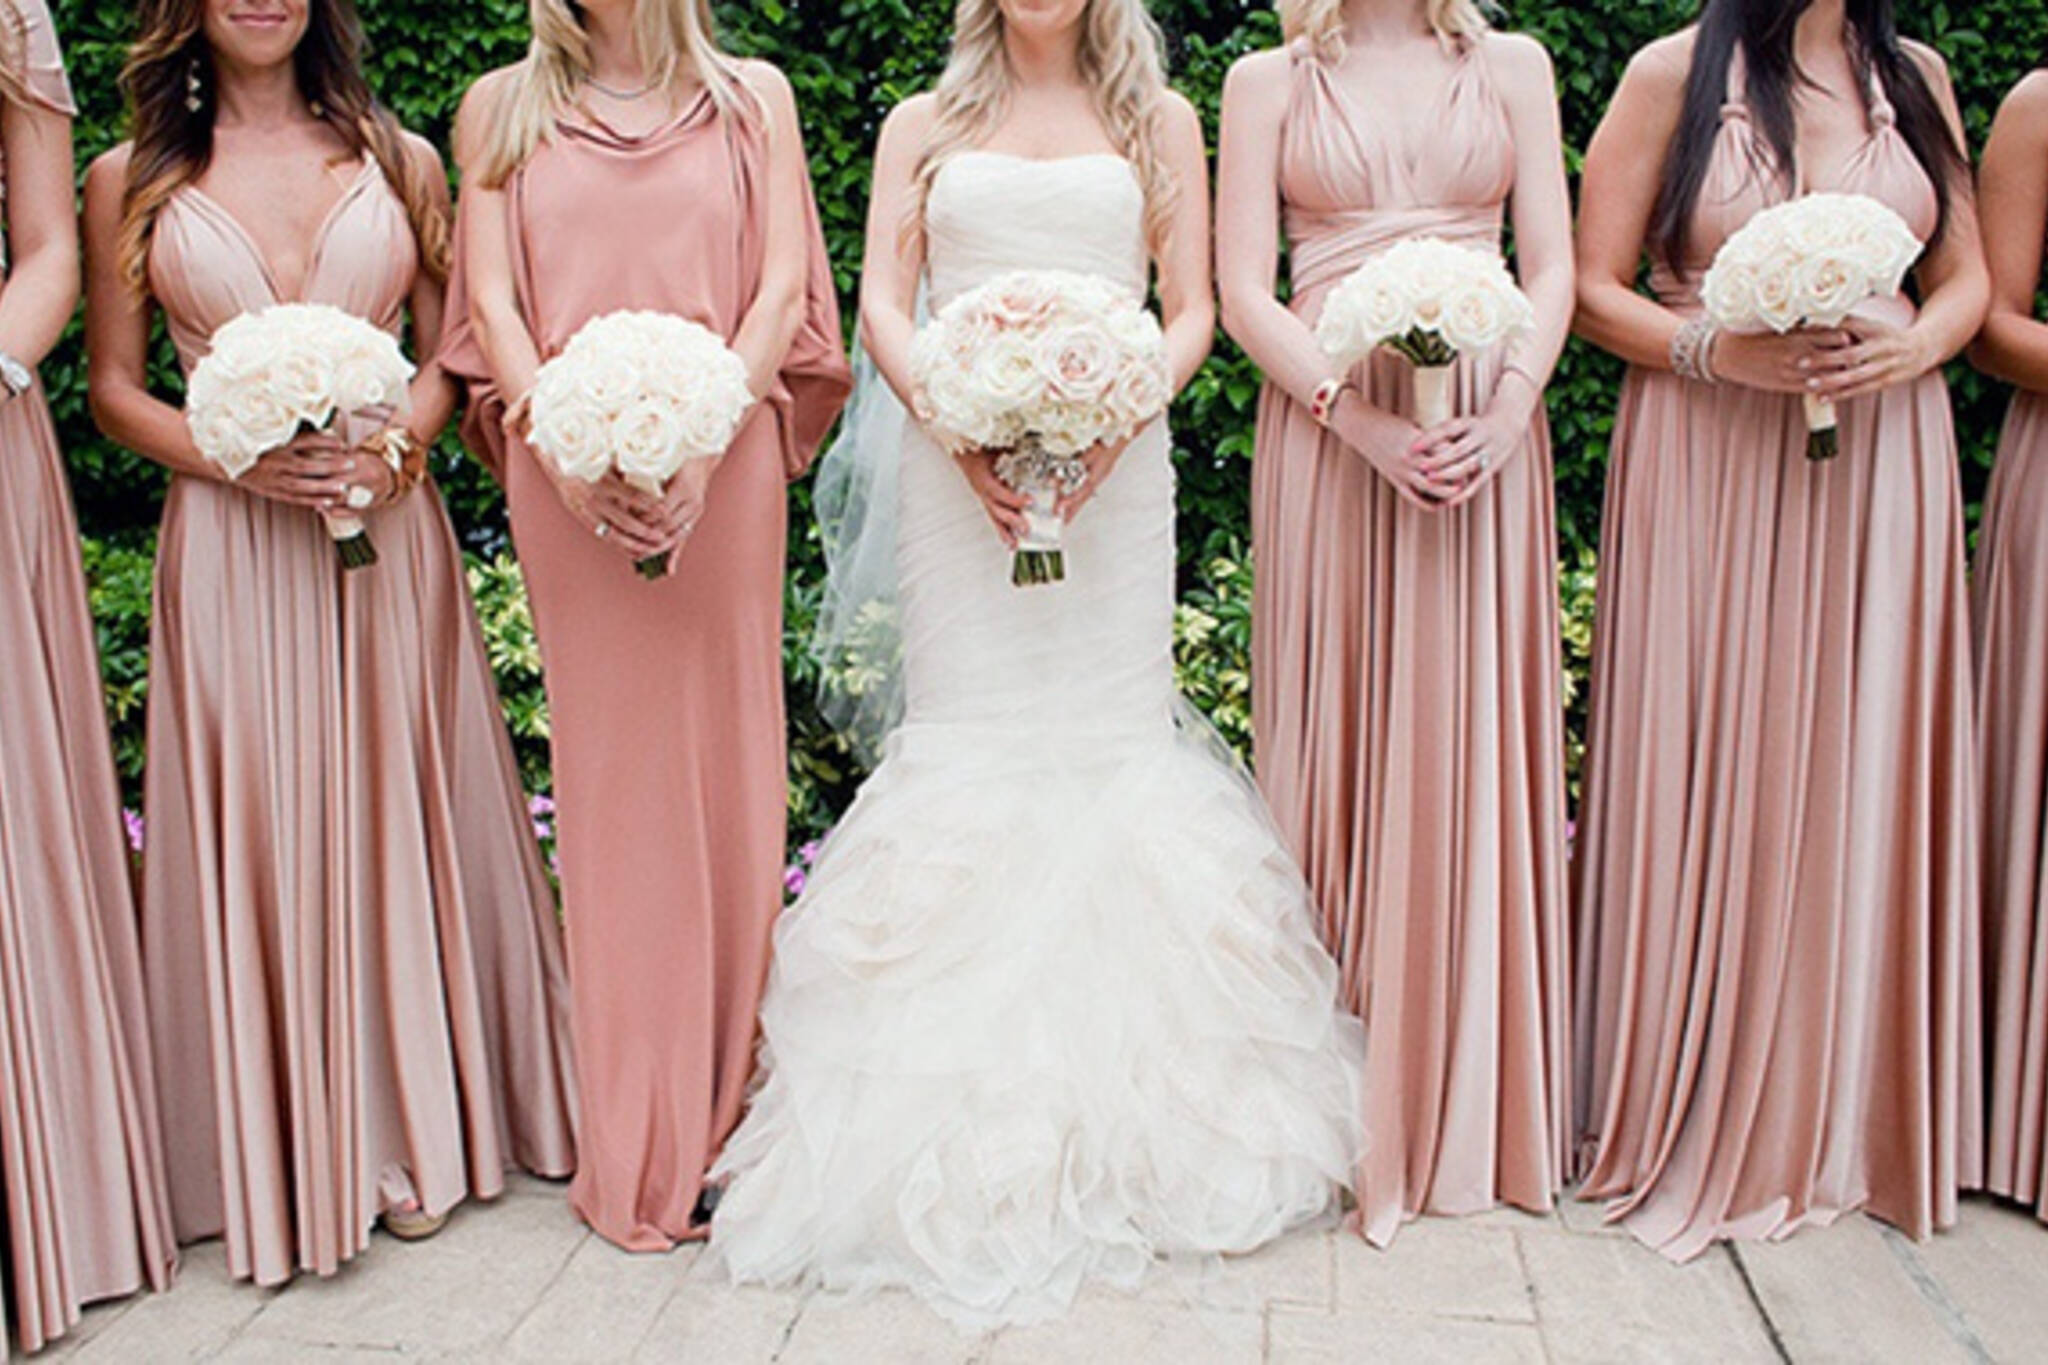 c091f4f64c1a Best Bridesmaid Dresses